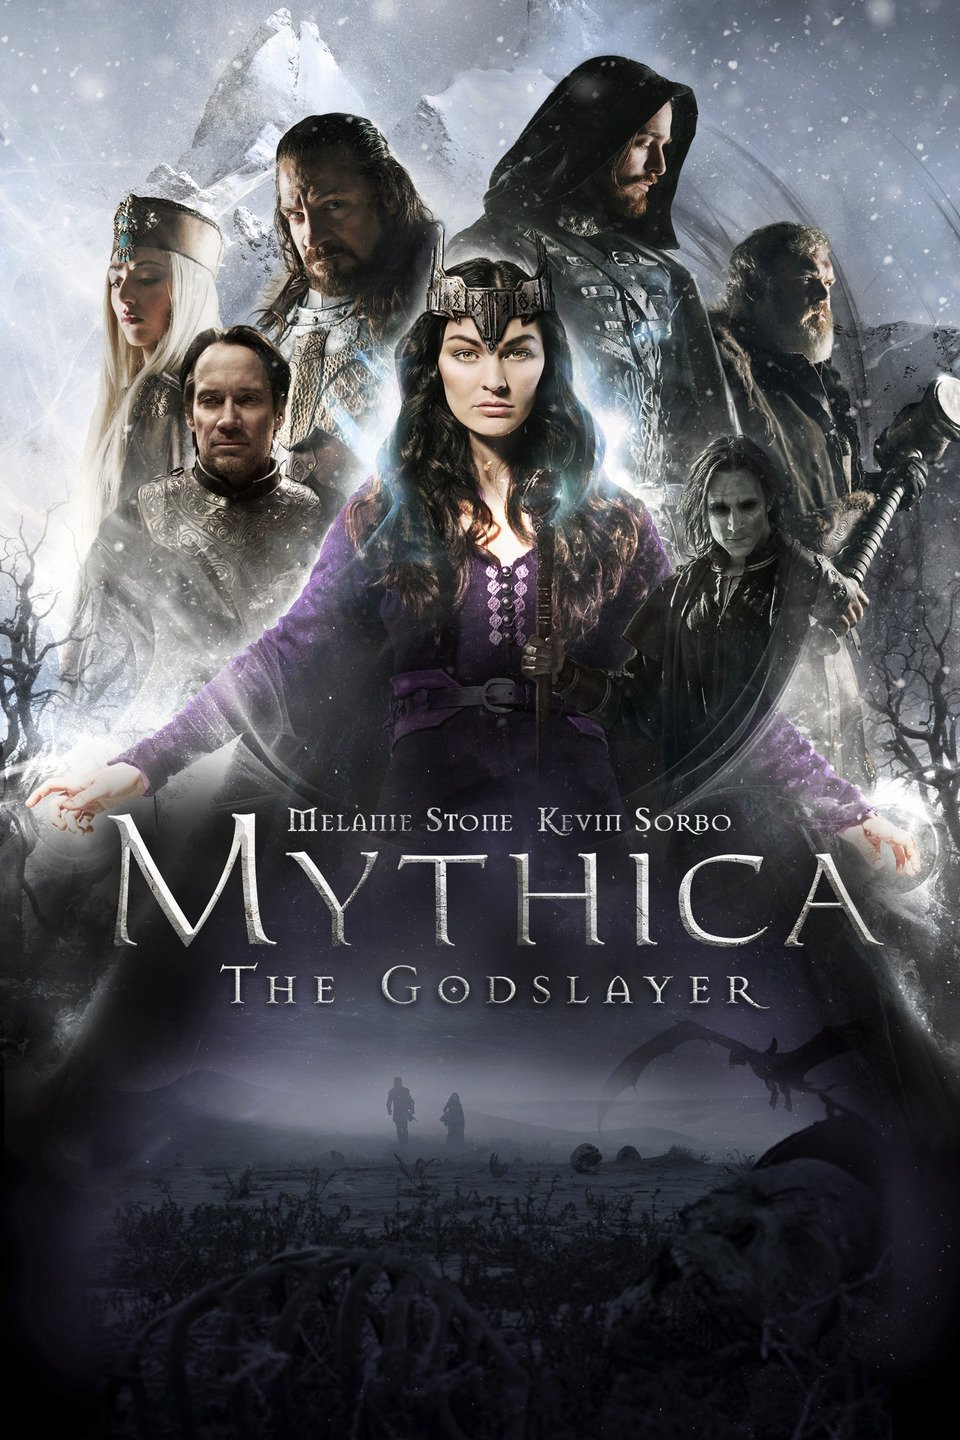 Mythica: The Godslayer-Mythica: The Godslayer